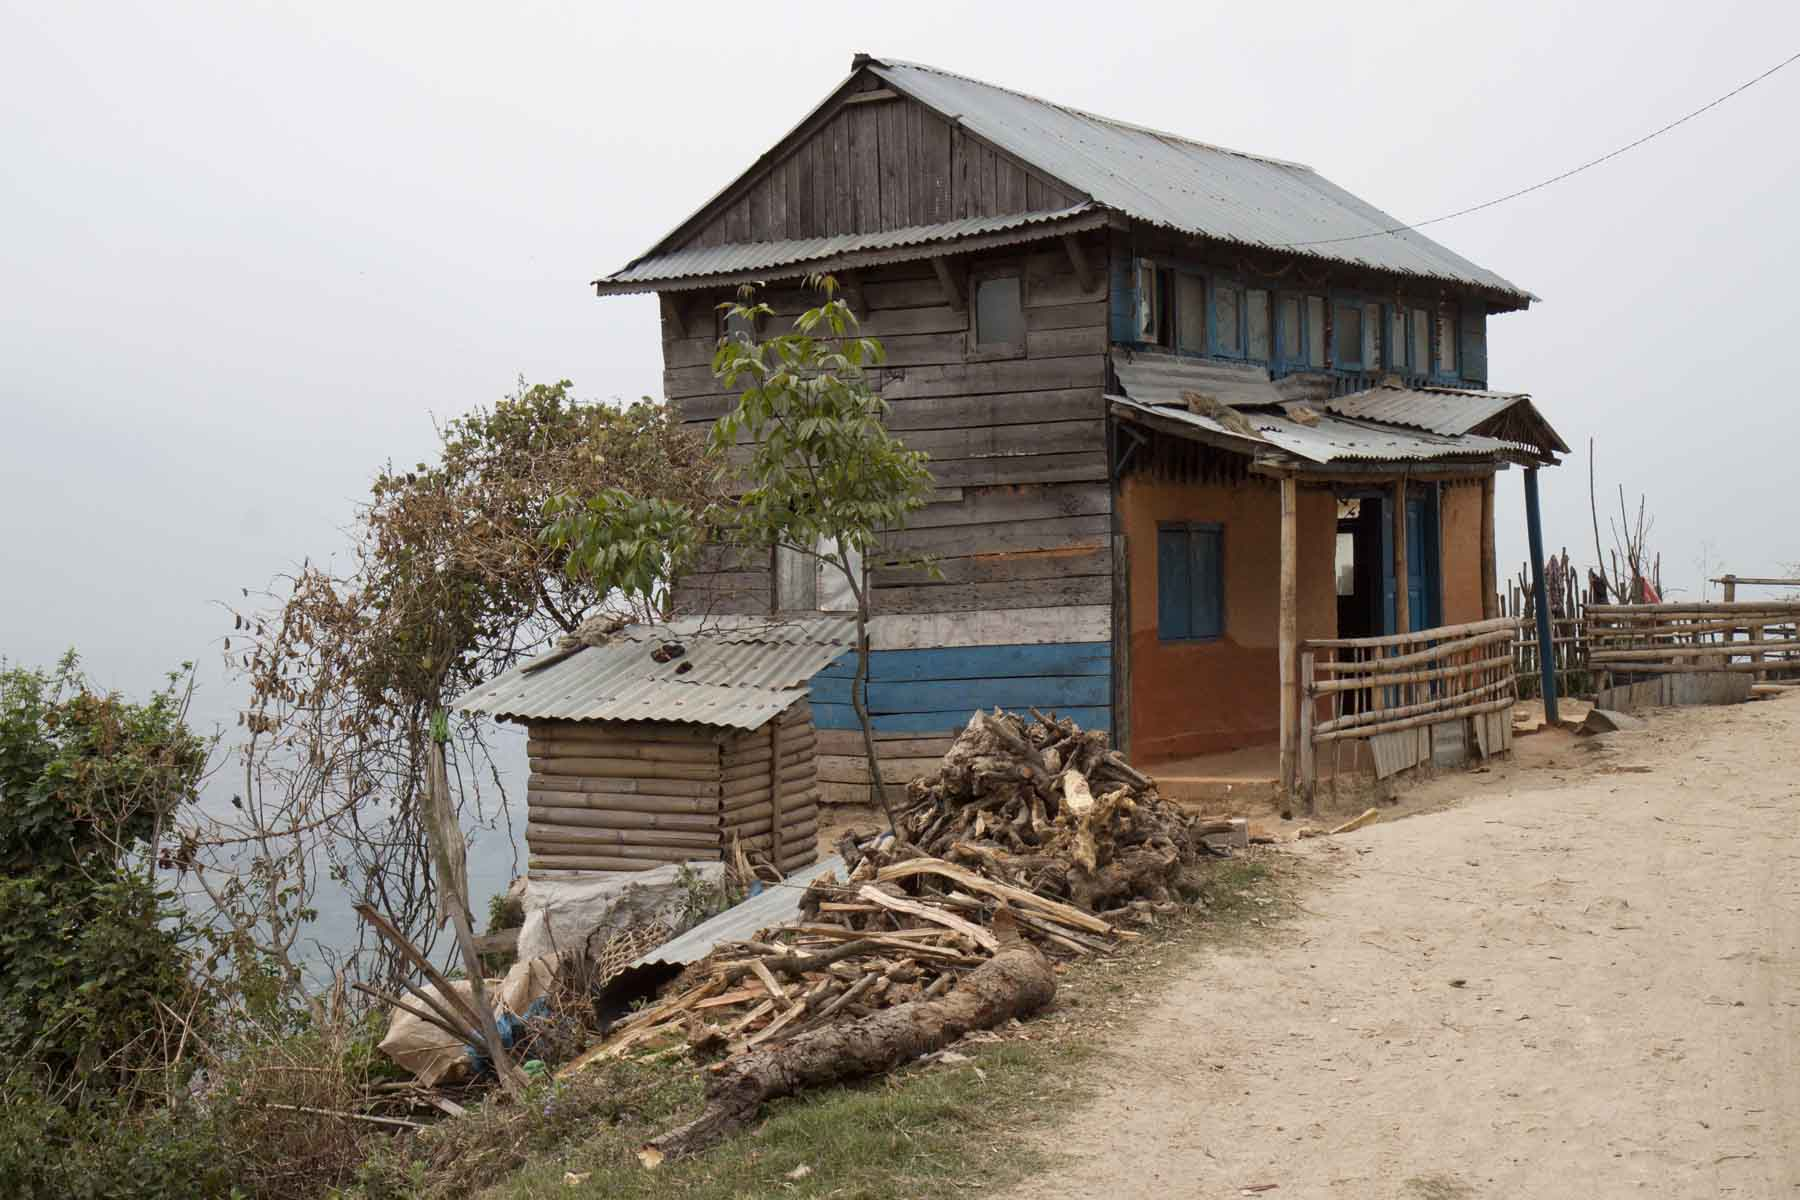 Farmhouse outside, Changu, Nepal